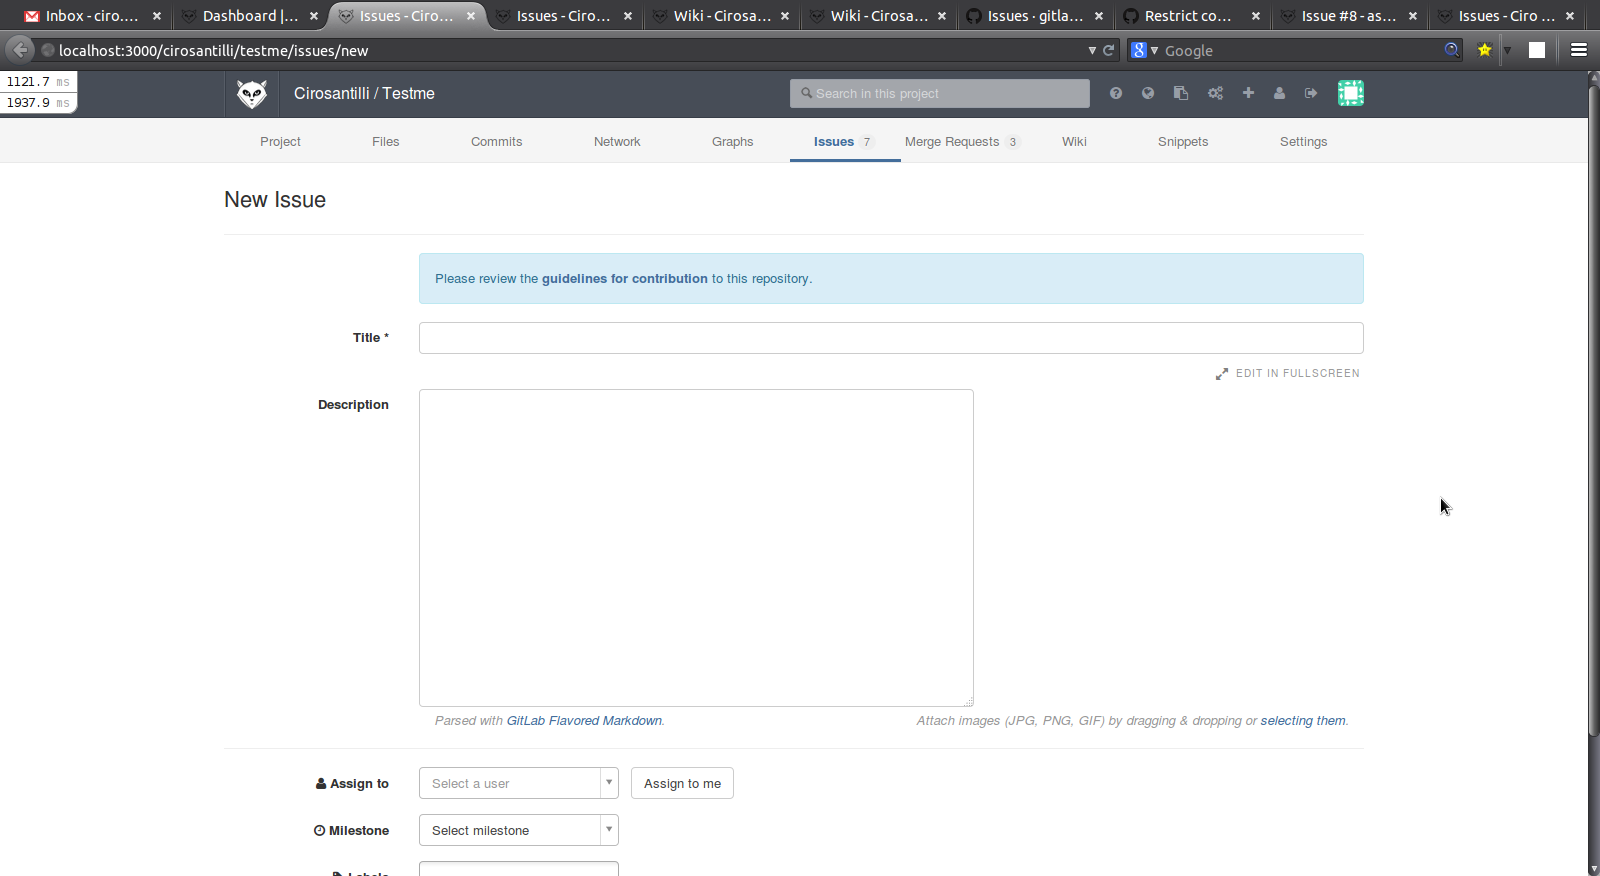 screenshot from 2014-09-19 09 01 33 gitlab textarea resize issue small